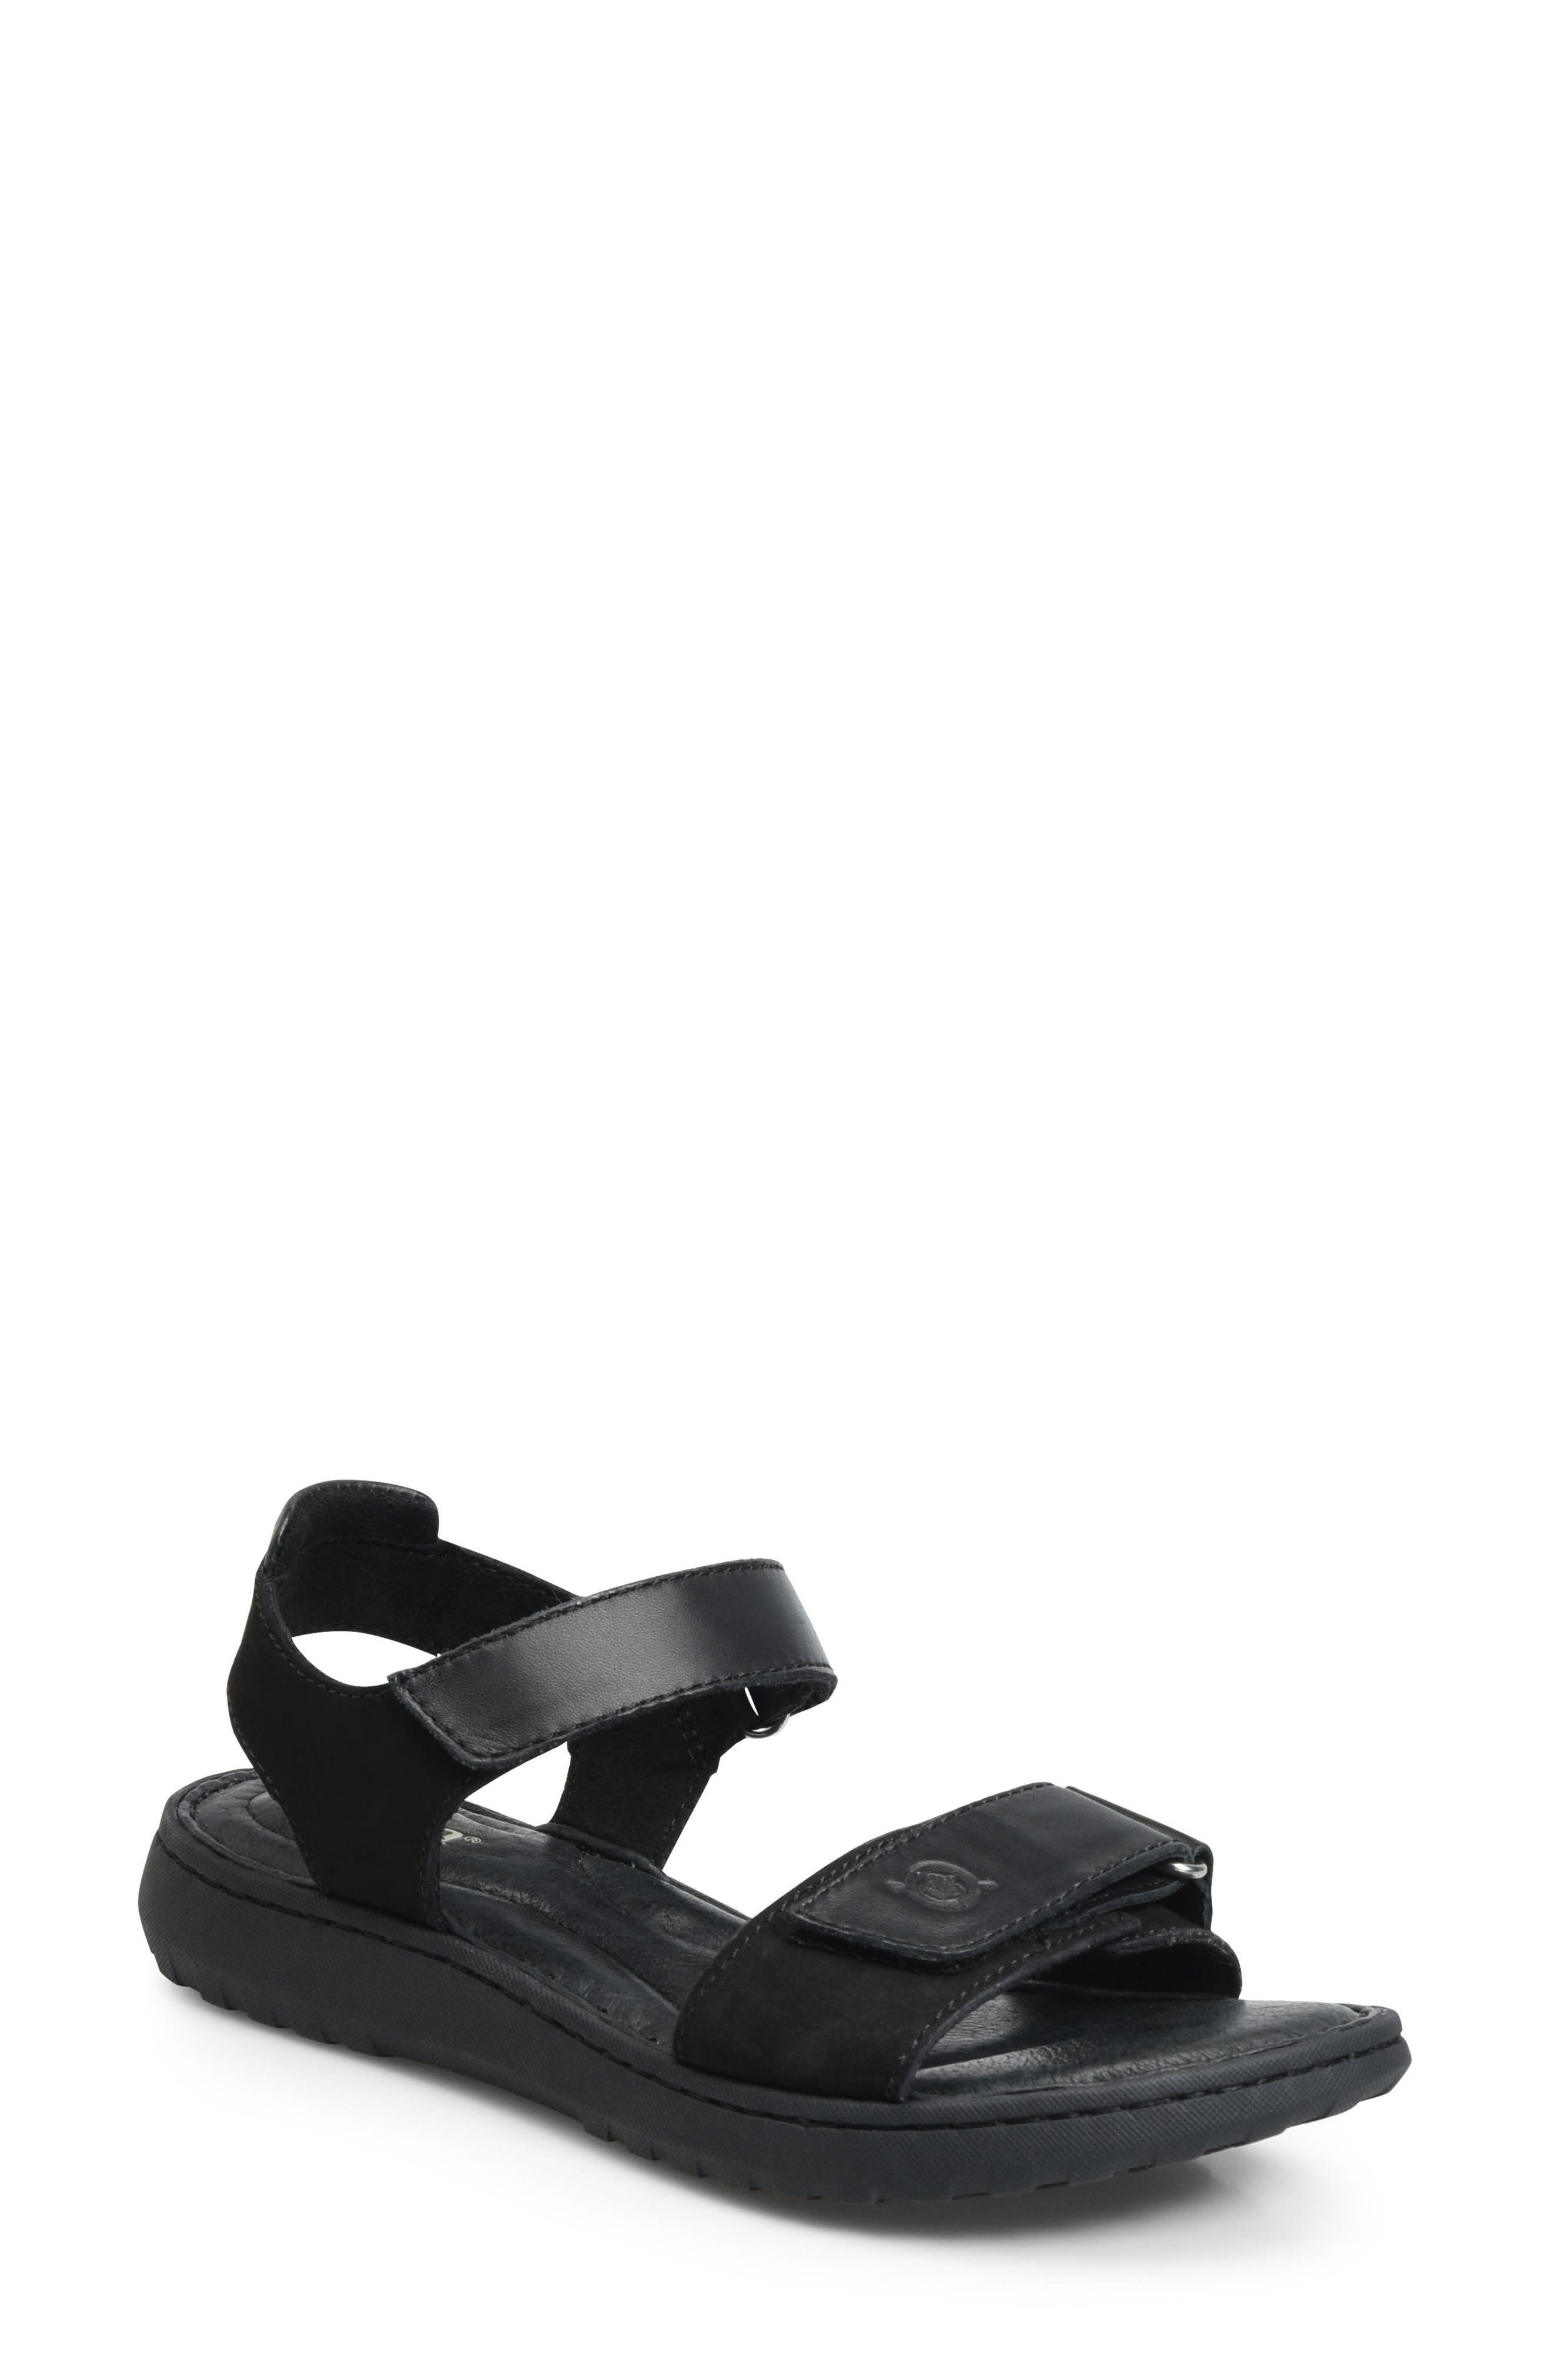 Nirvana Sandal,                             Main thumbnail 1, color,                             Black Leather